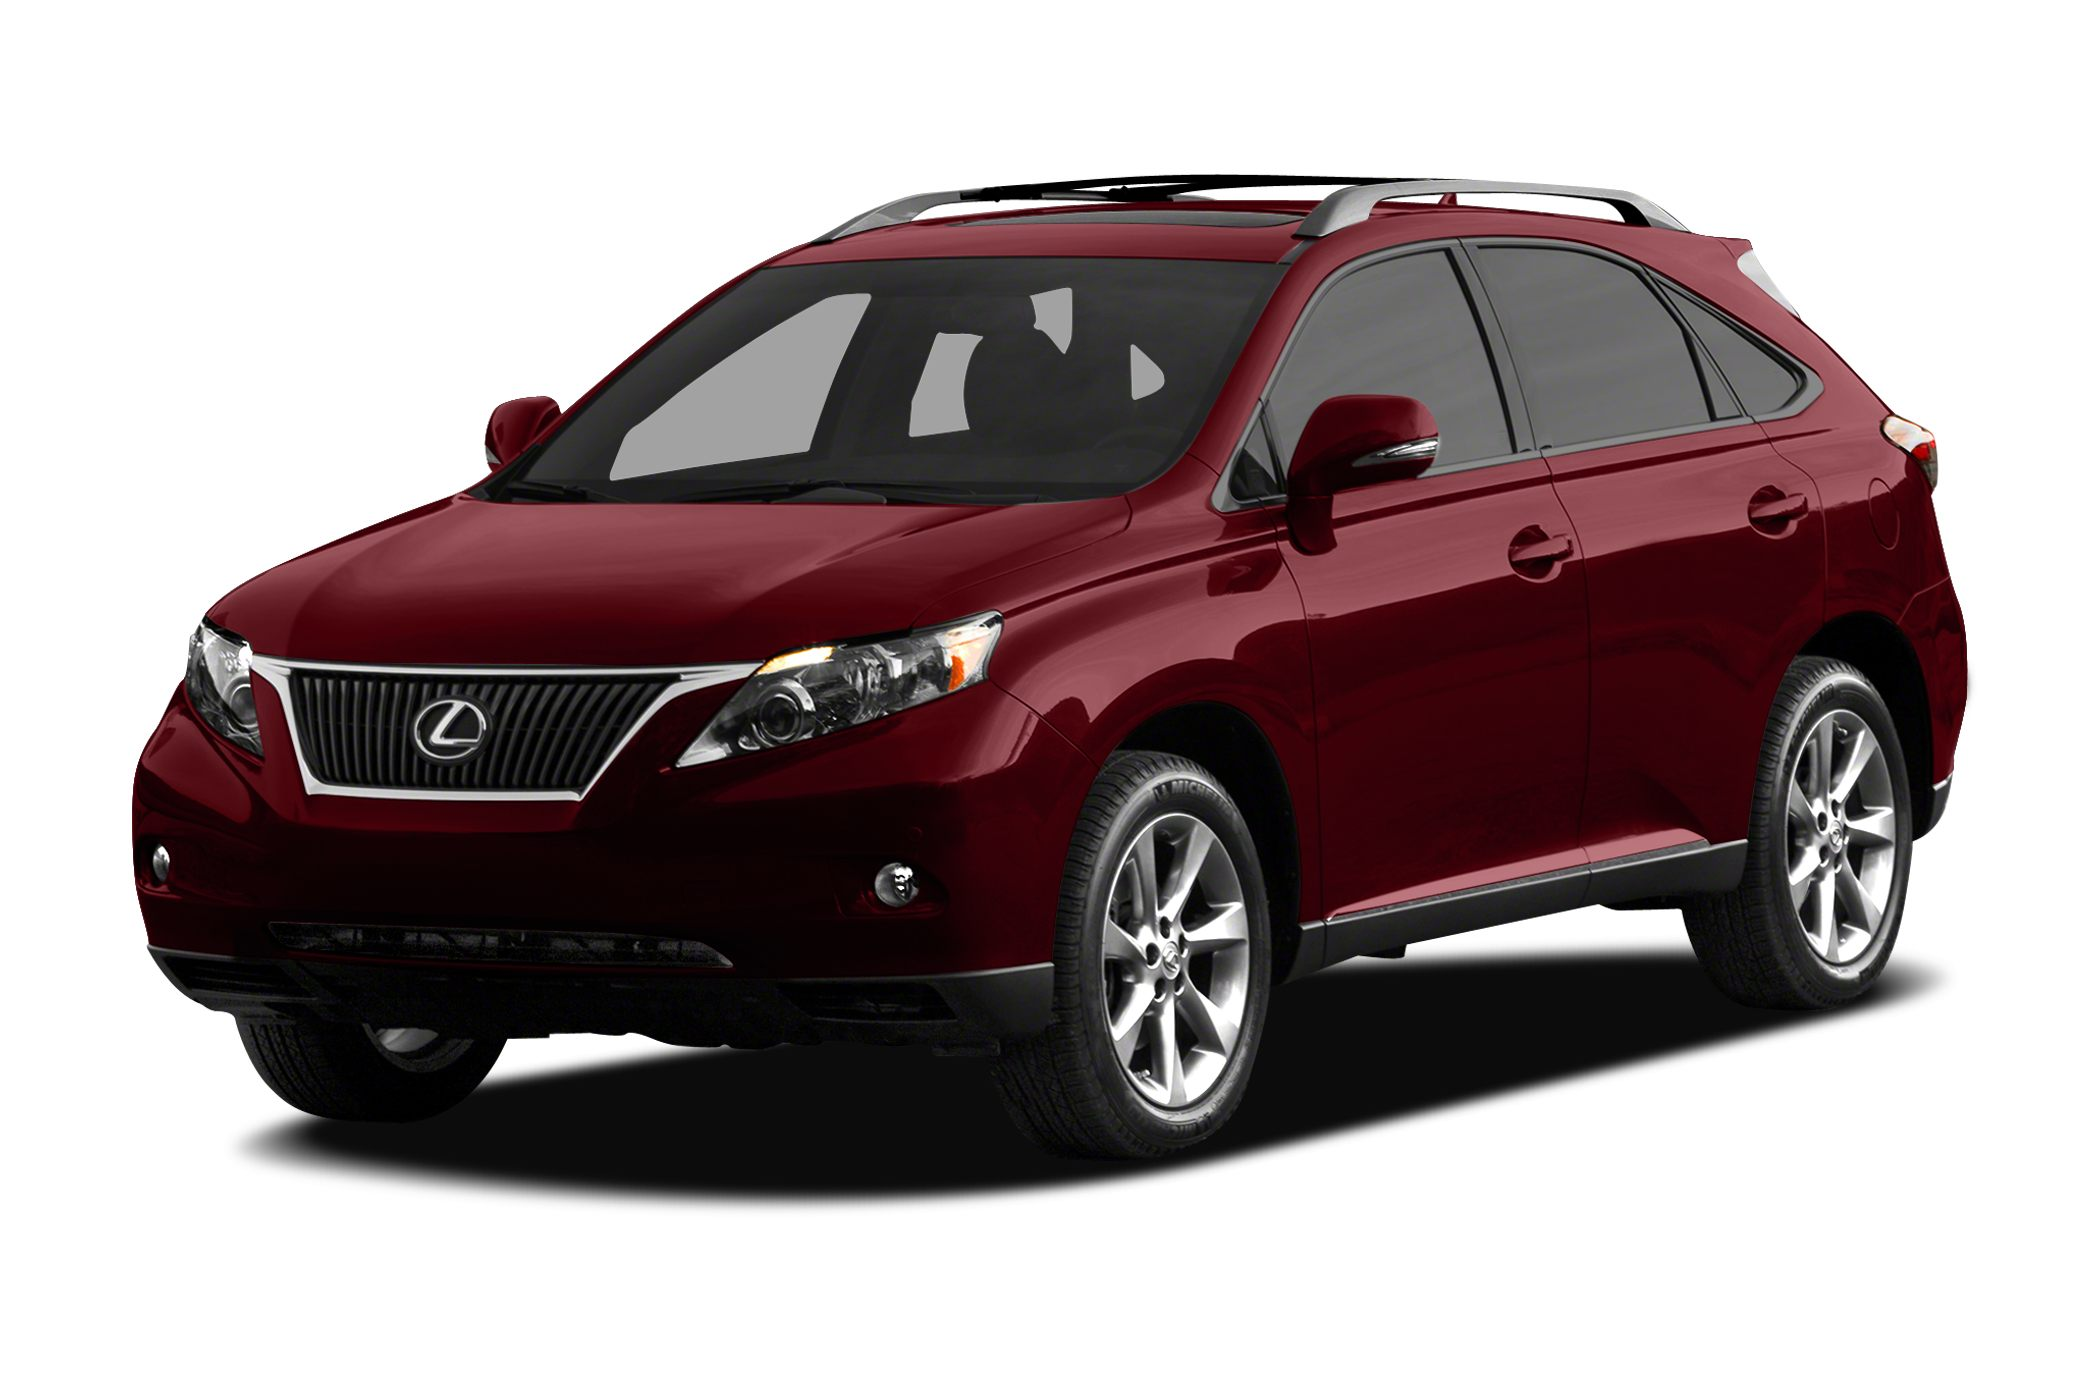 2011 Lexus RX 350 Base SUV for sale in Oklahoma City for $29,995 with 44,087 miles